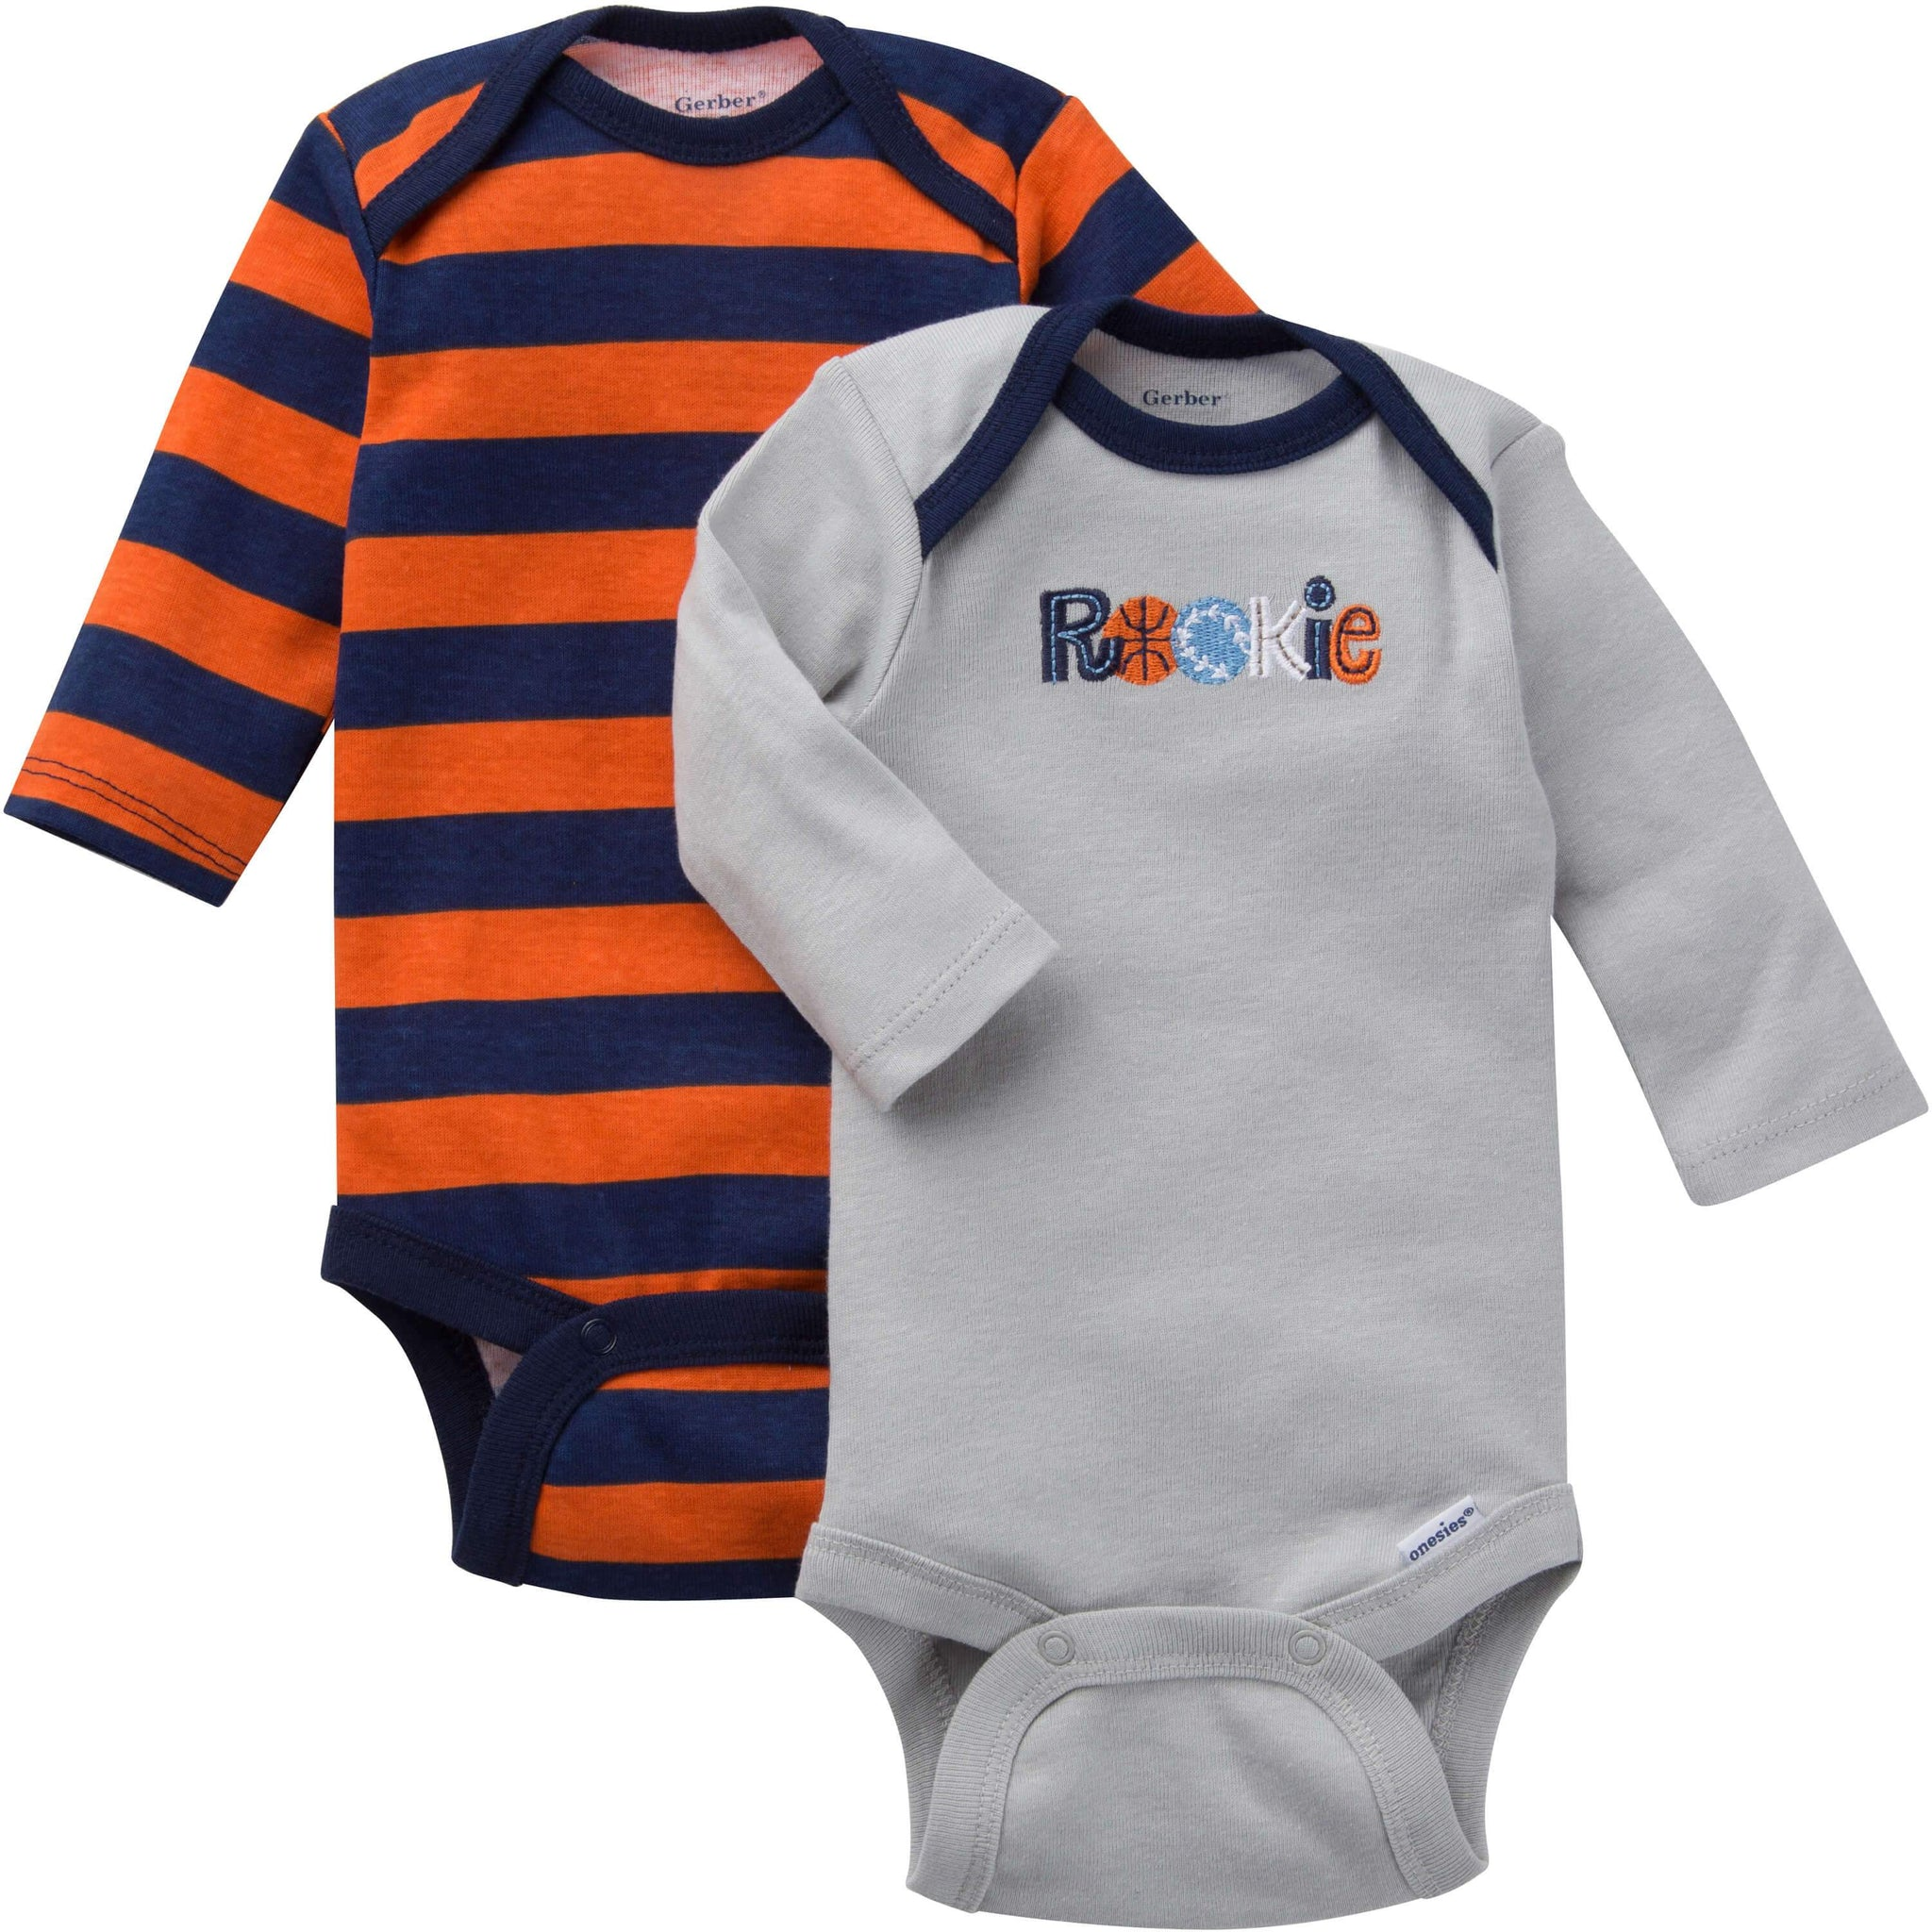 2-Pack Boys Onesies Brand Long Sleeve Bodysuits - Sports